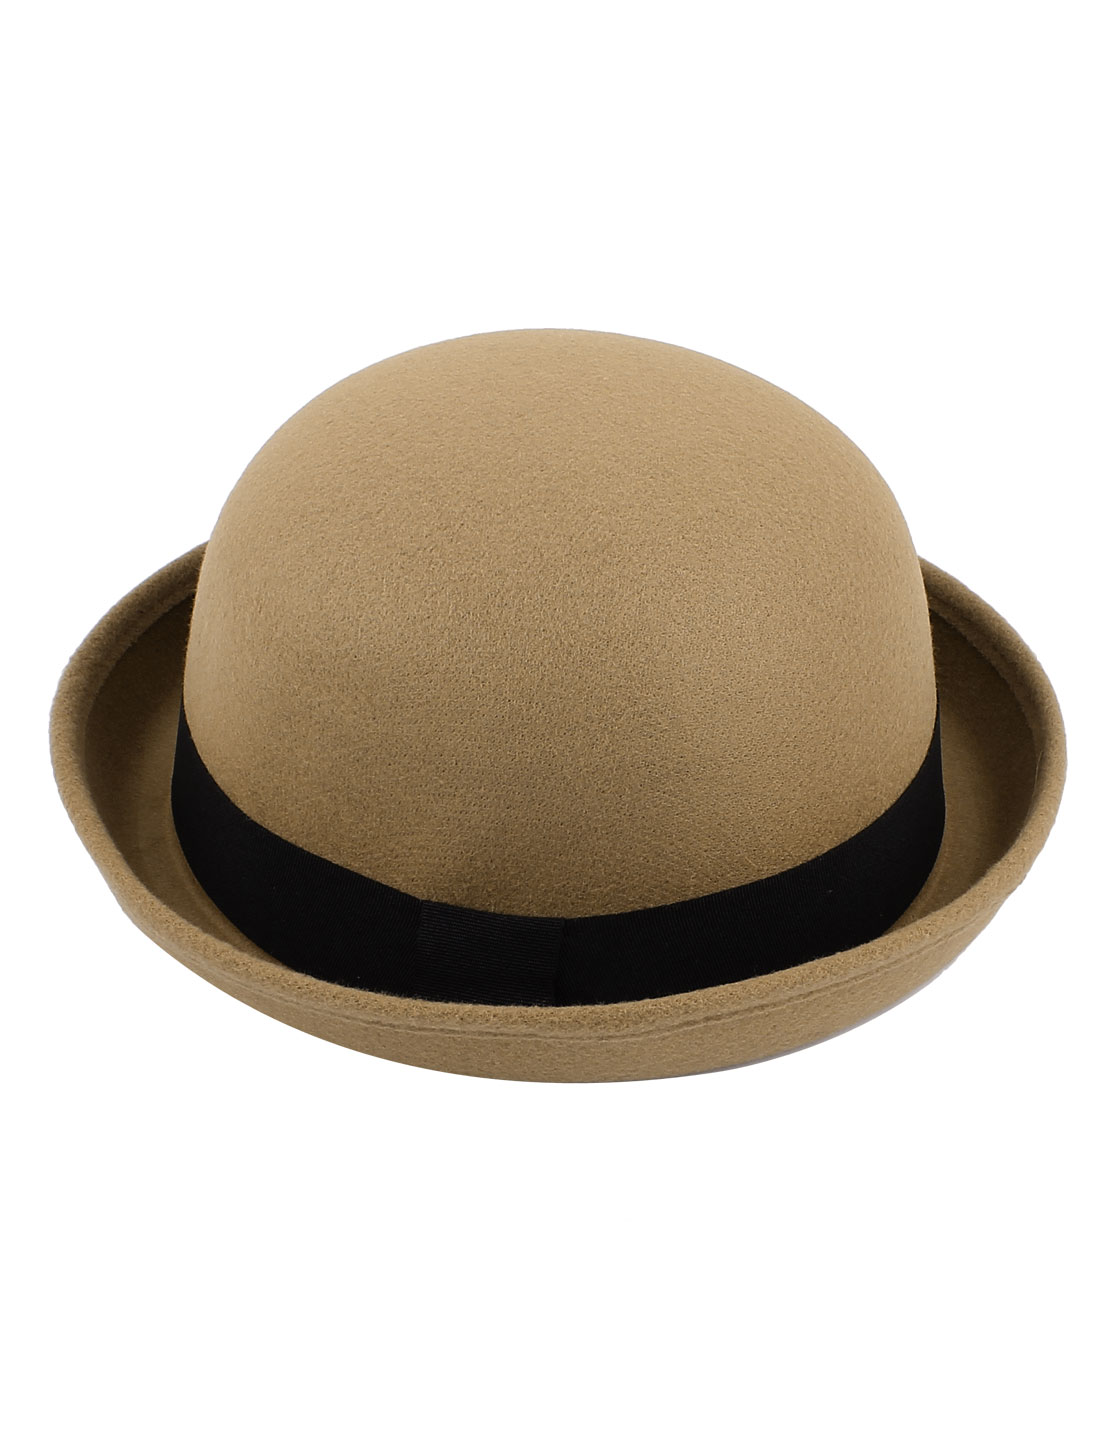 Girl Travel Black Band Rolled Cotton Blends Roll up Brim Worsted Bowler Hat Cap Khaki